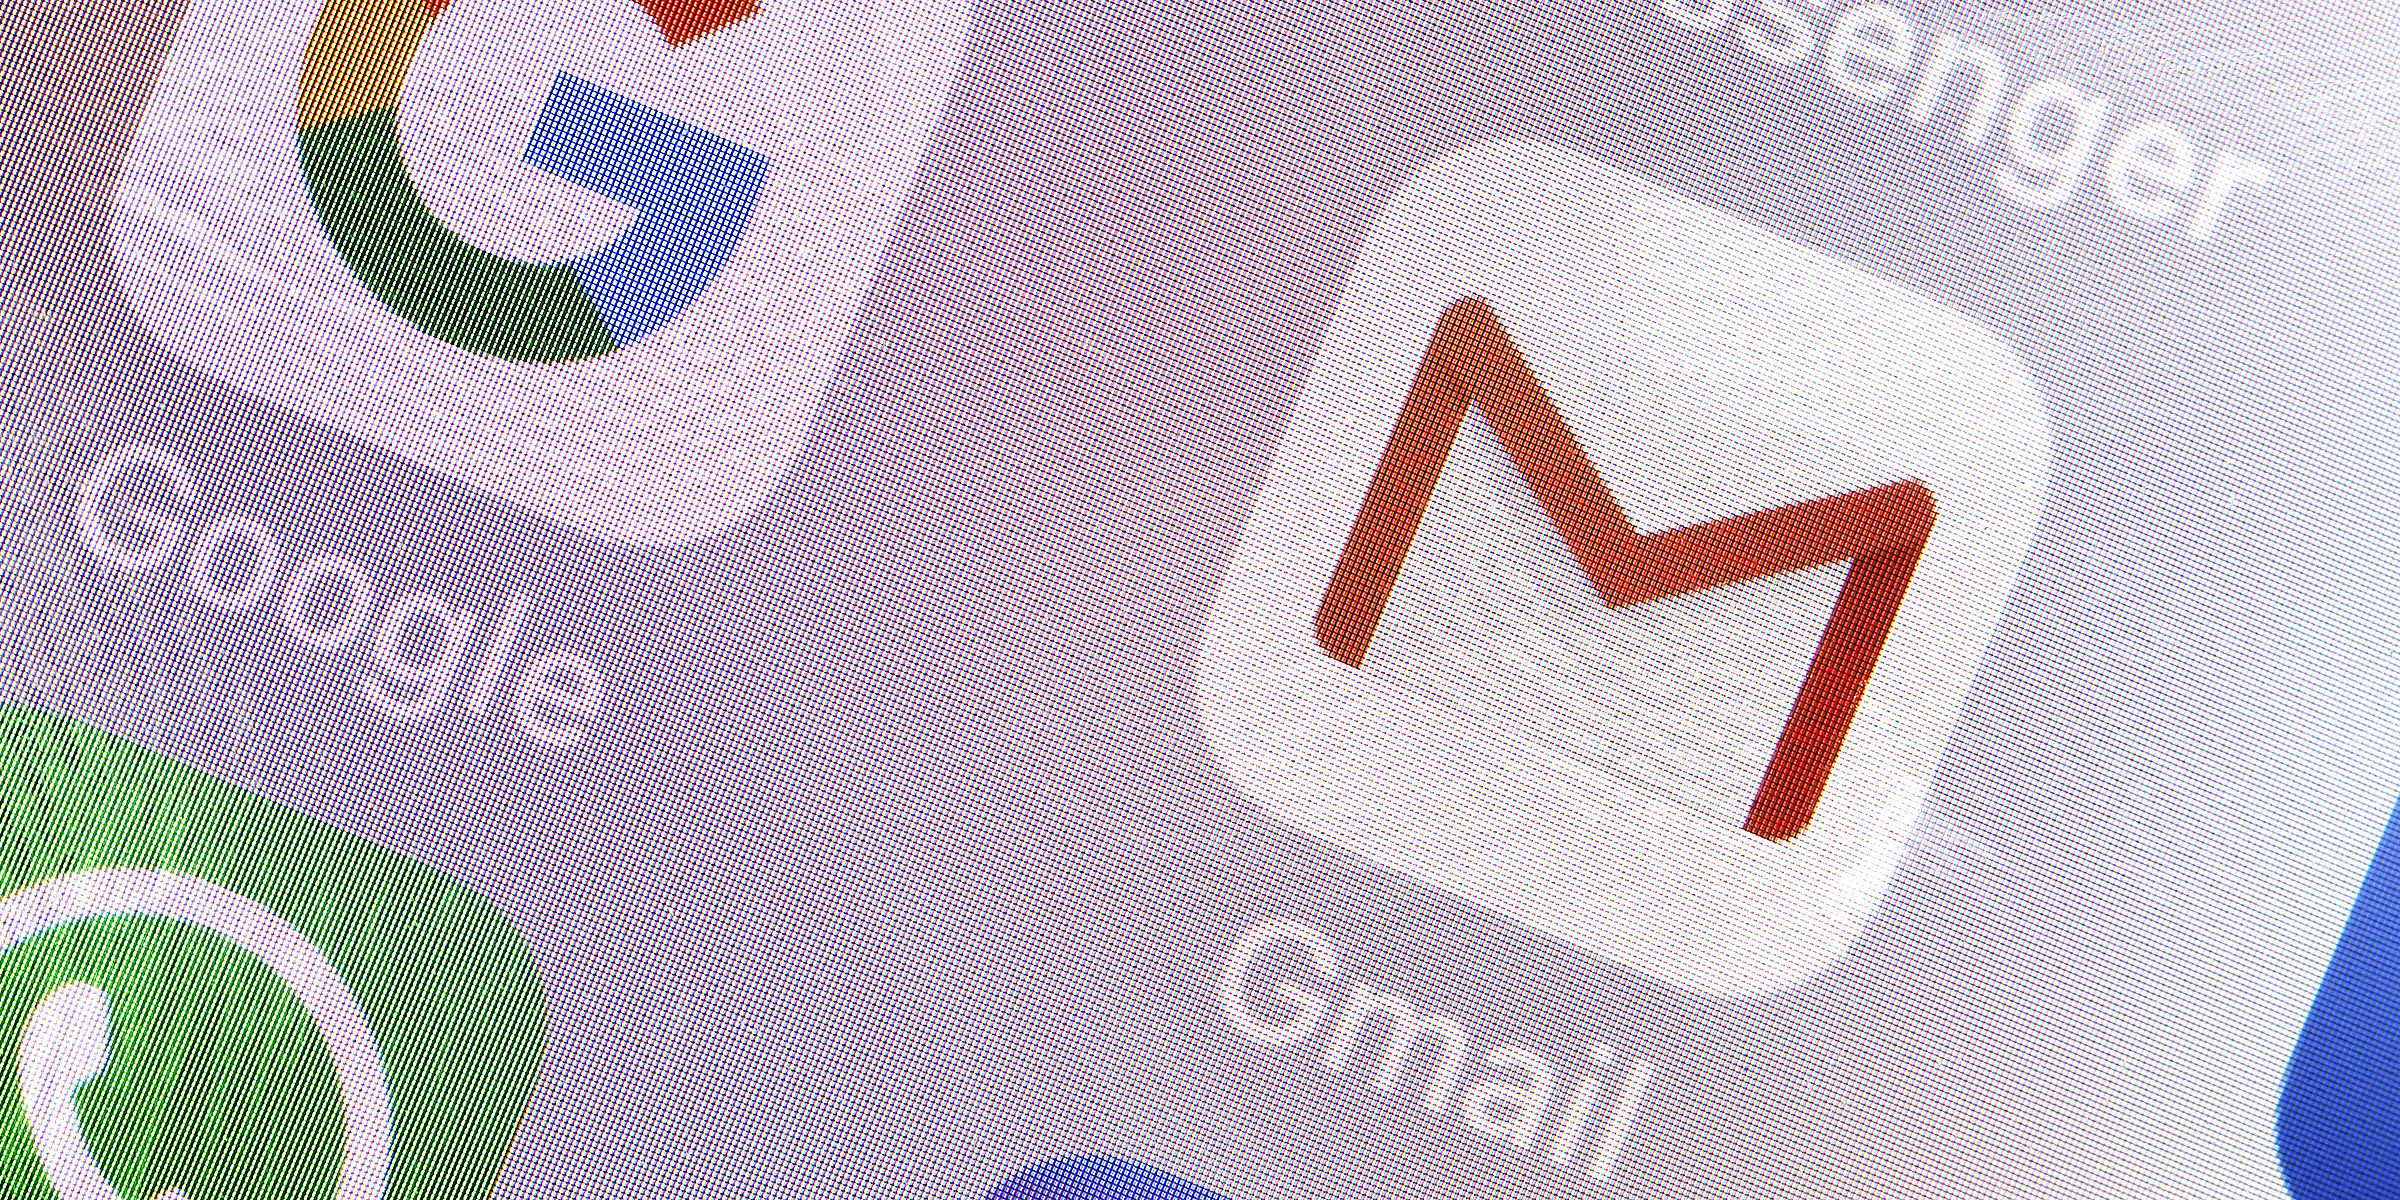 How to delete a gmail account or deactivate it in 2020